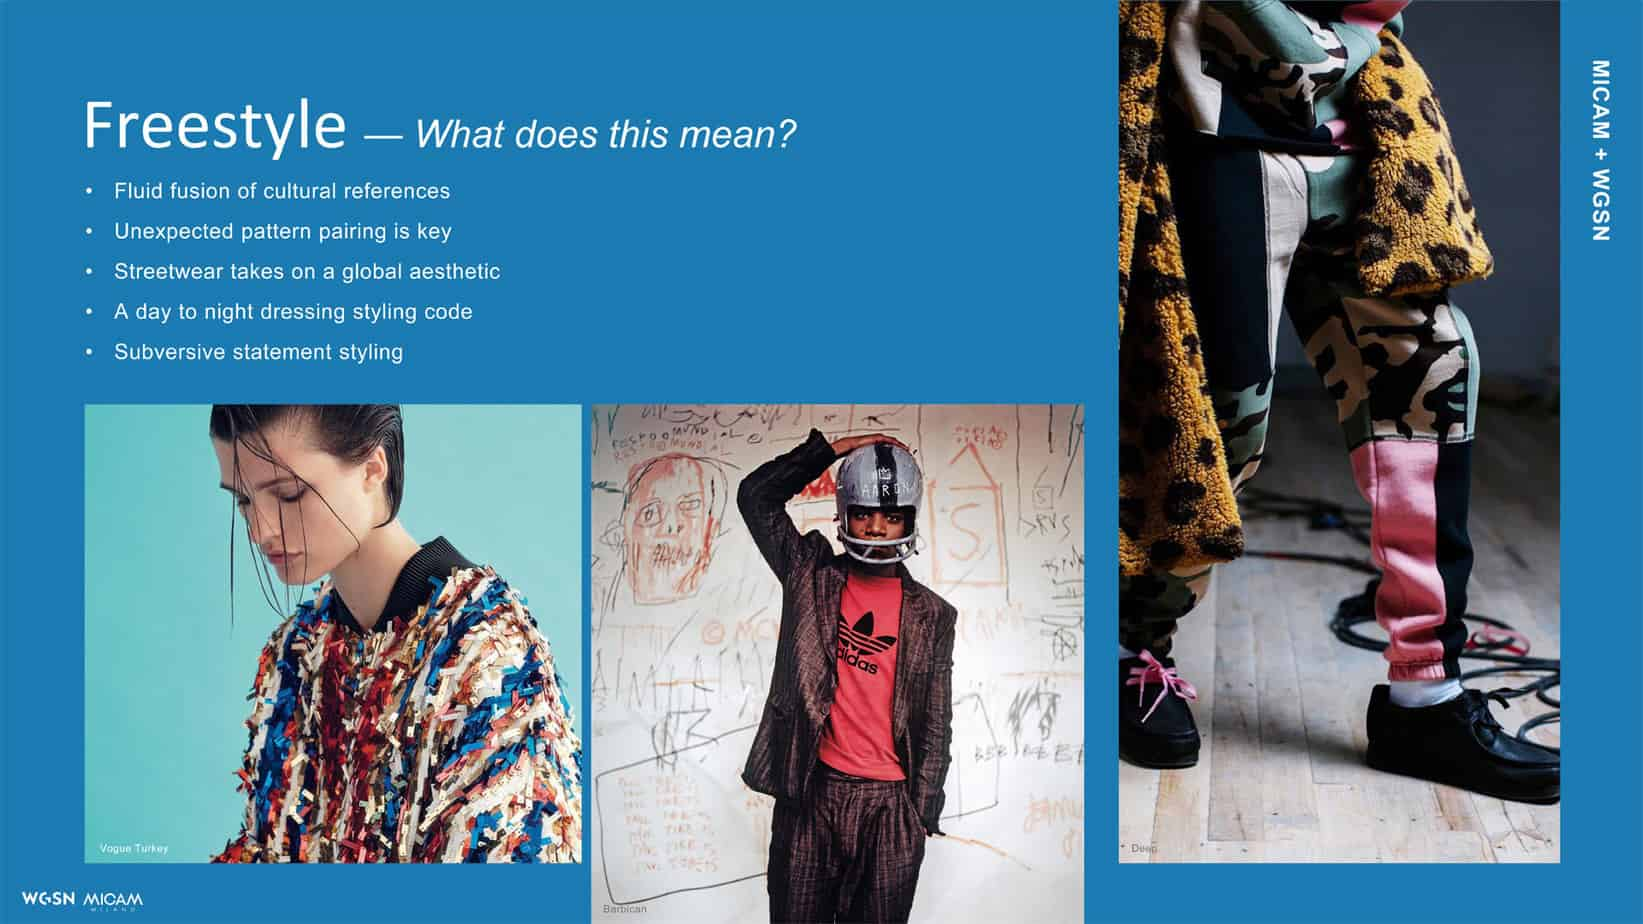 Freestyle - What does this mean? • Fluid fusion of cultural references • Unexpected pattern pairing is key • Streetwear takes on a global aesthetic • A day to night dressing styling code • Subversive statement styling